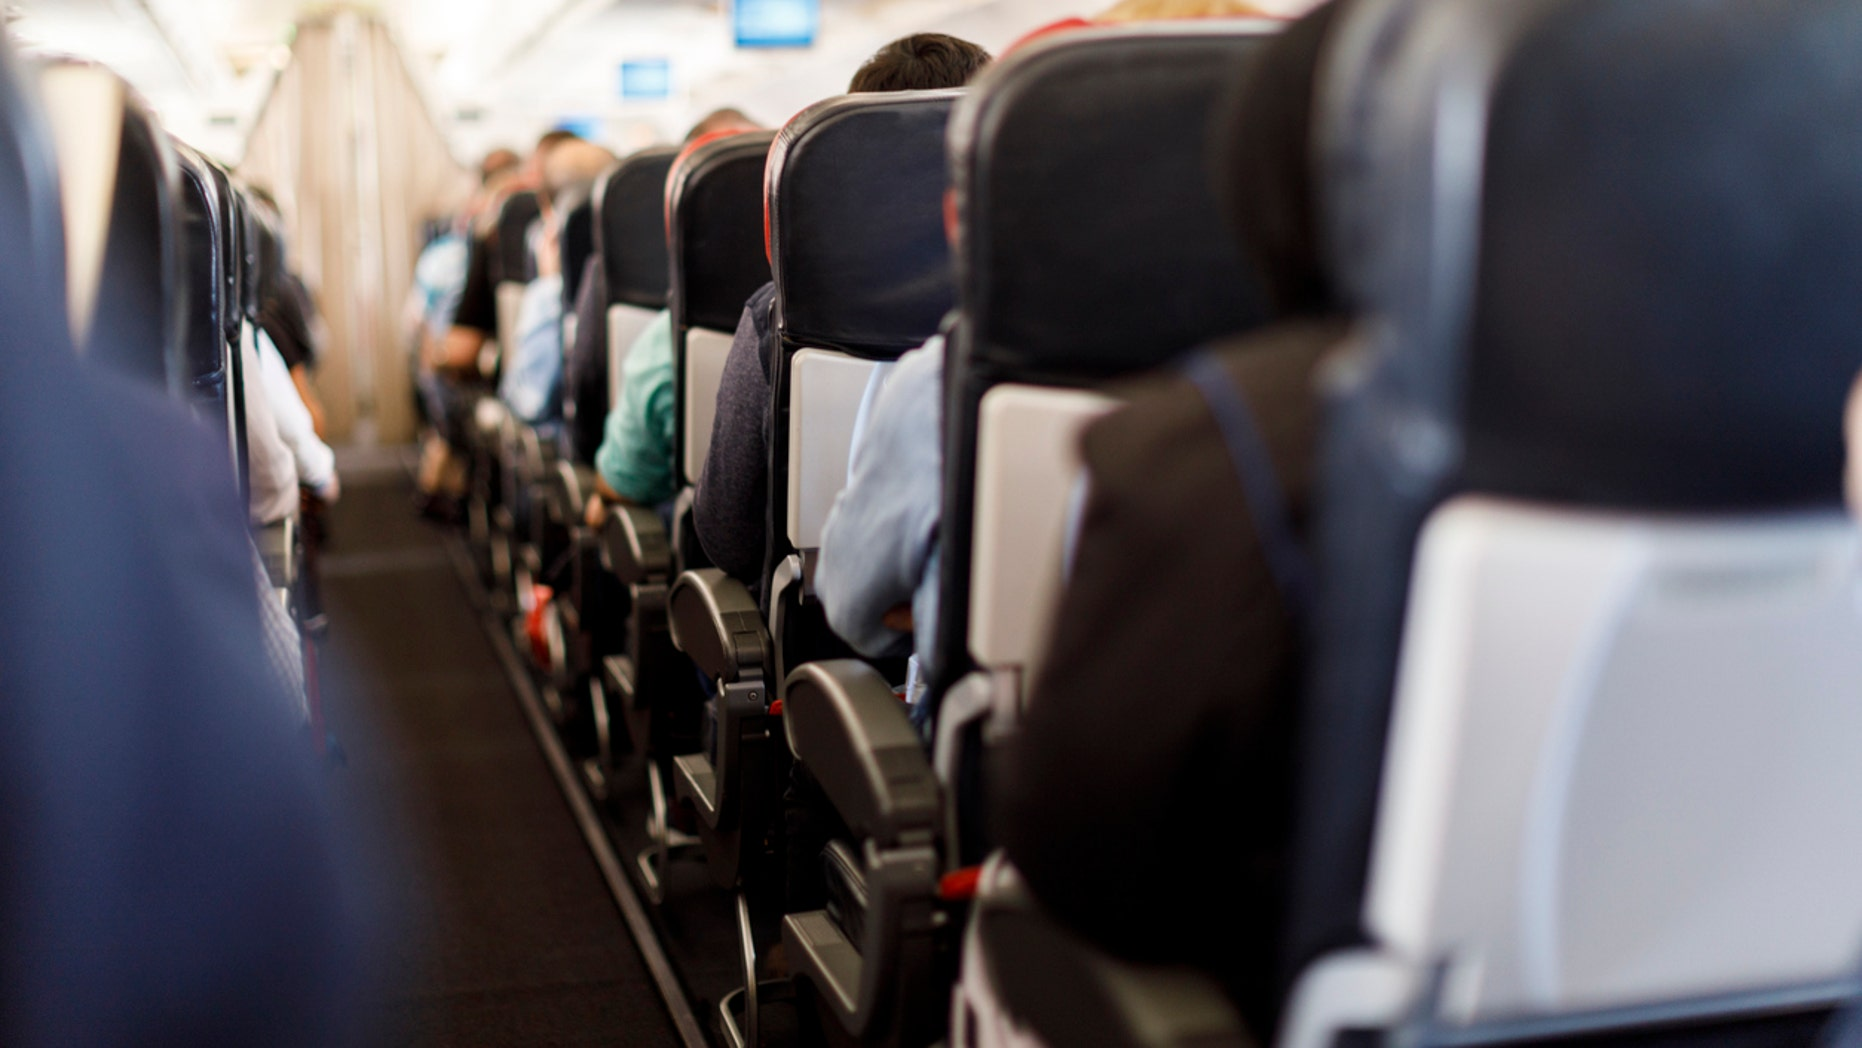 An airline passenger was reportedly spotted allowing her toddler to use a portable potty in the aisle of the plane.